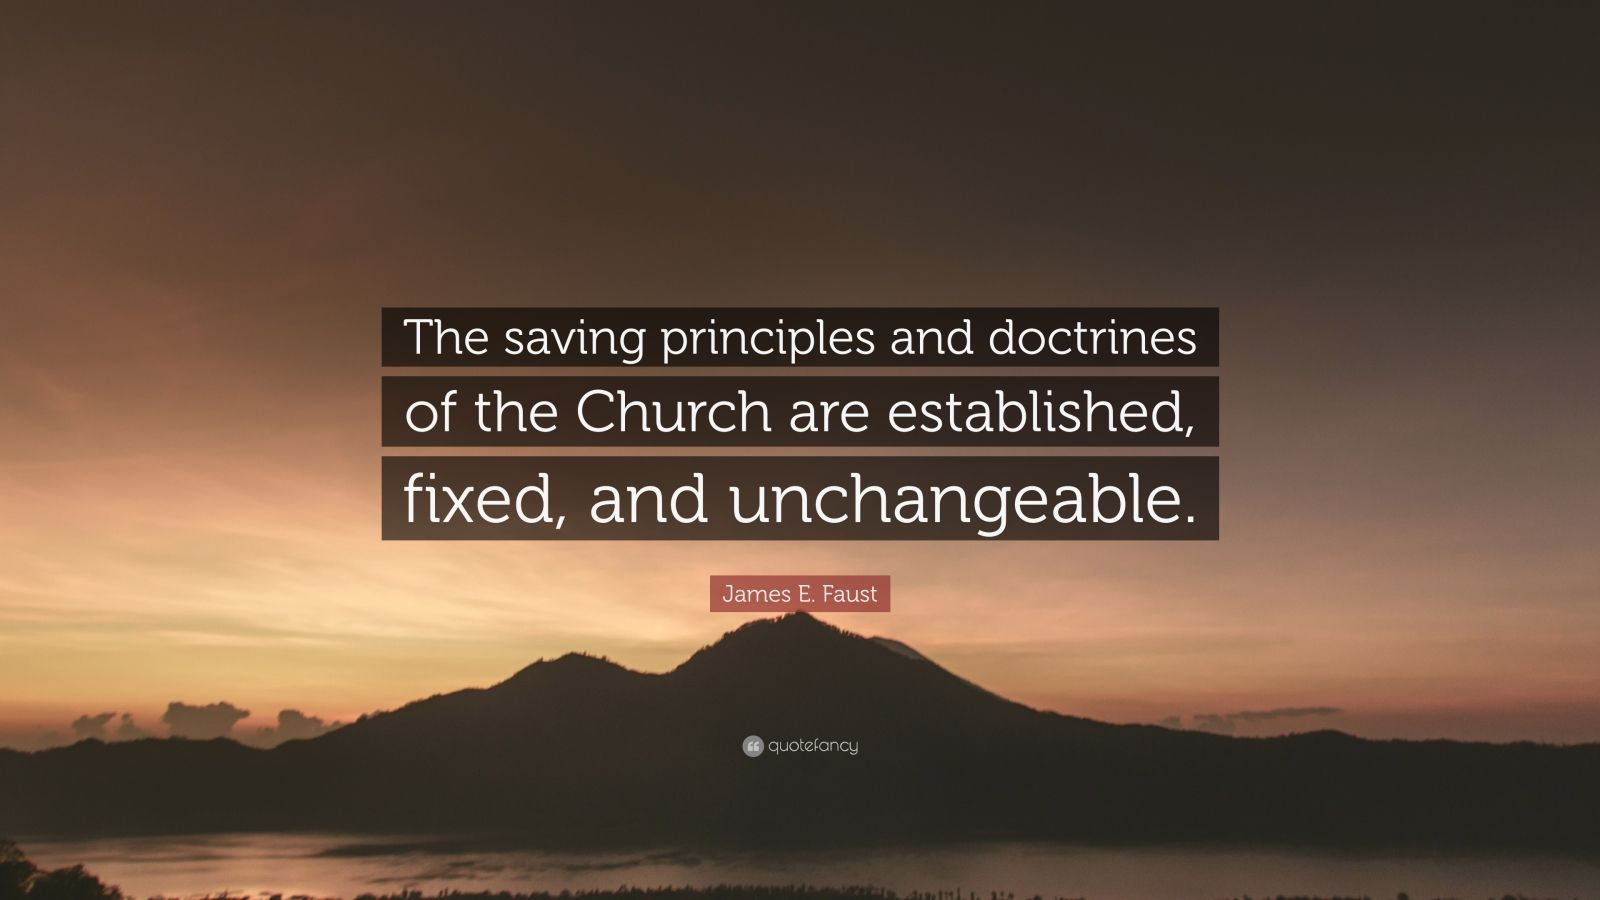 """James E. Faust Quote: """"The saving principles and doctrines of the Church are established, fixed, and unchangeable."""""""